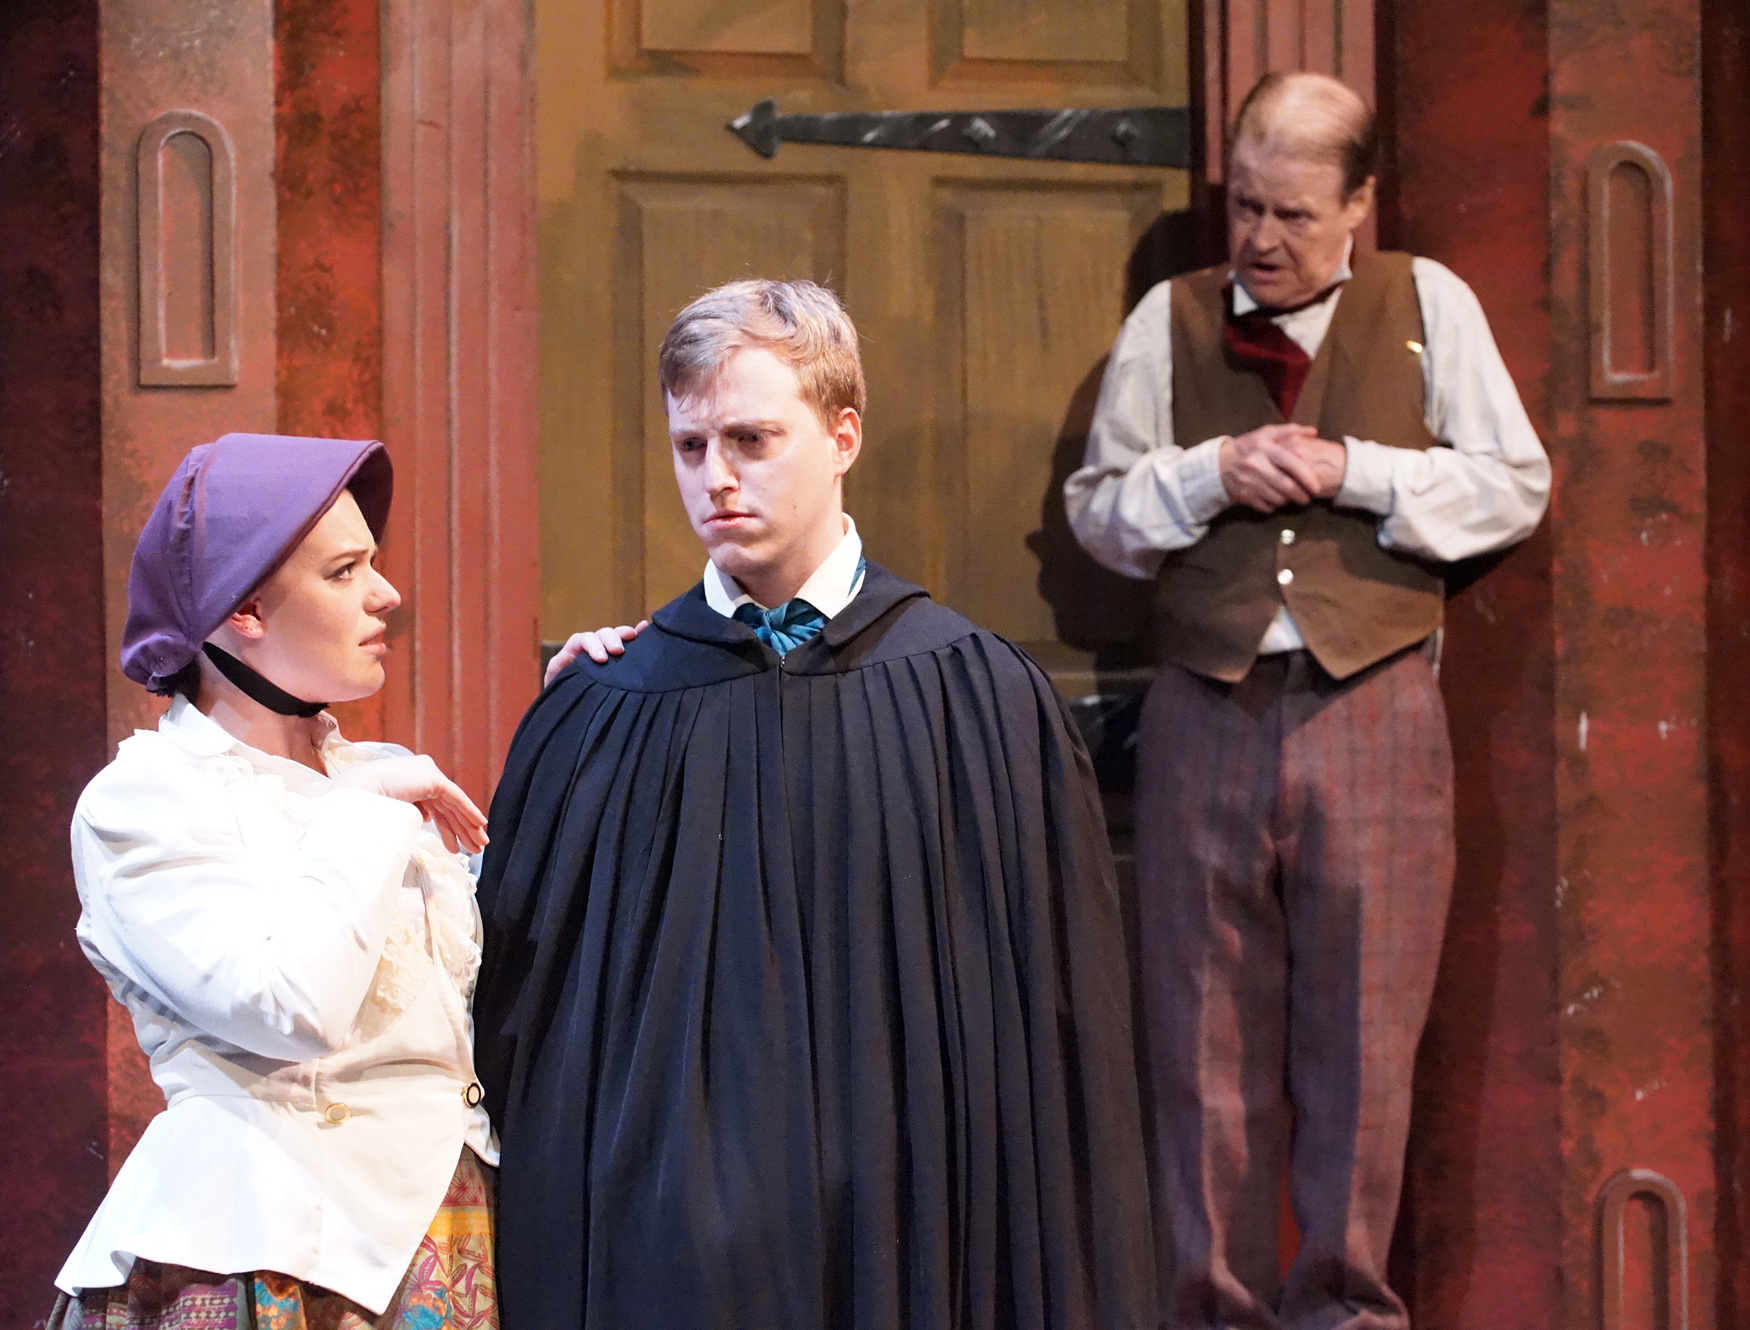 """Gerry Maher, Lisa Vitrano, Andréa Andolina, left, Steve Brachmann and Gerry Maher star in """"The Chimes: A Goblin Story"""" for Road Less Traveled Productions. (Photos courtesy of Gina Gandolfo-Lopez.)"""